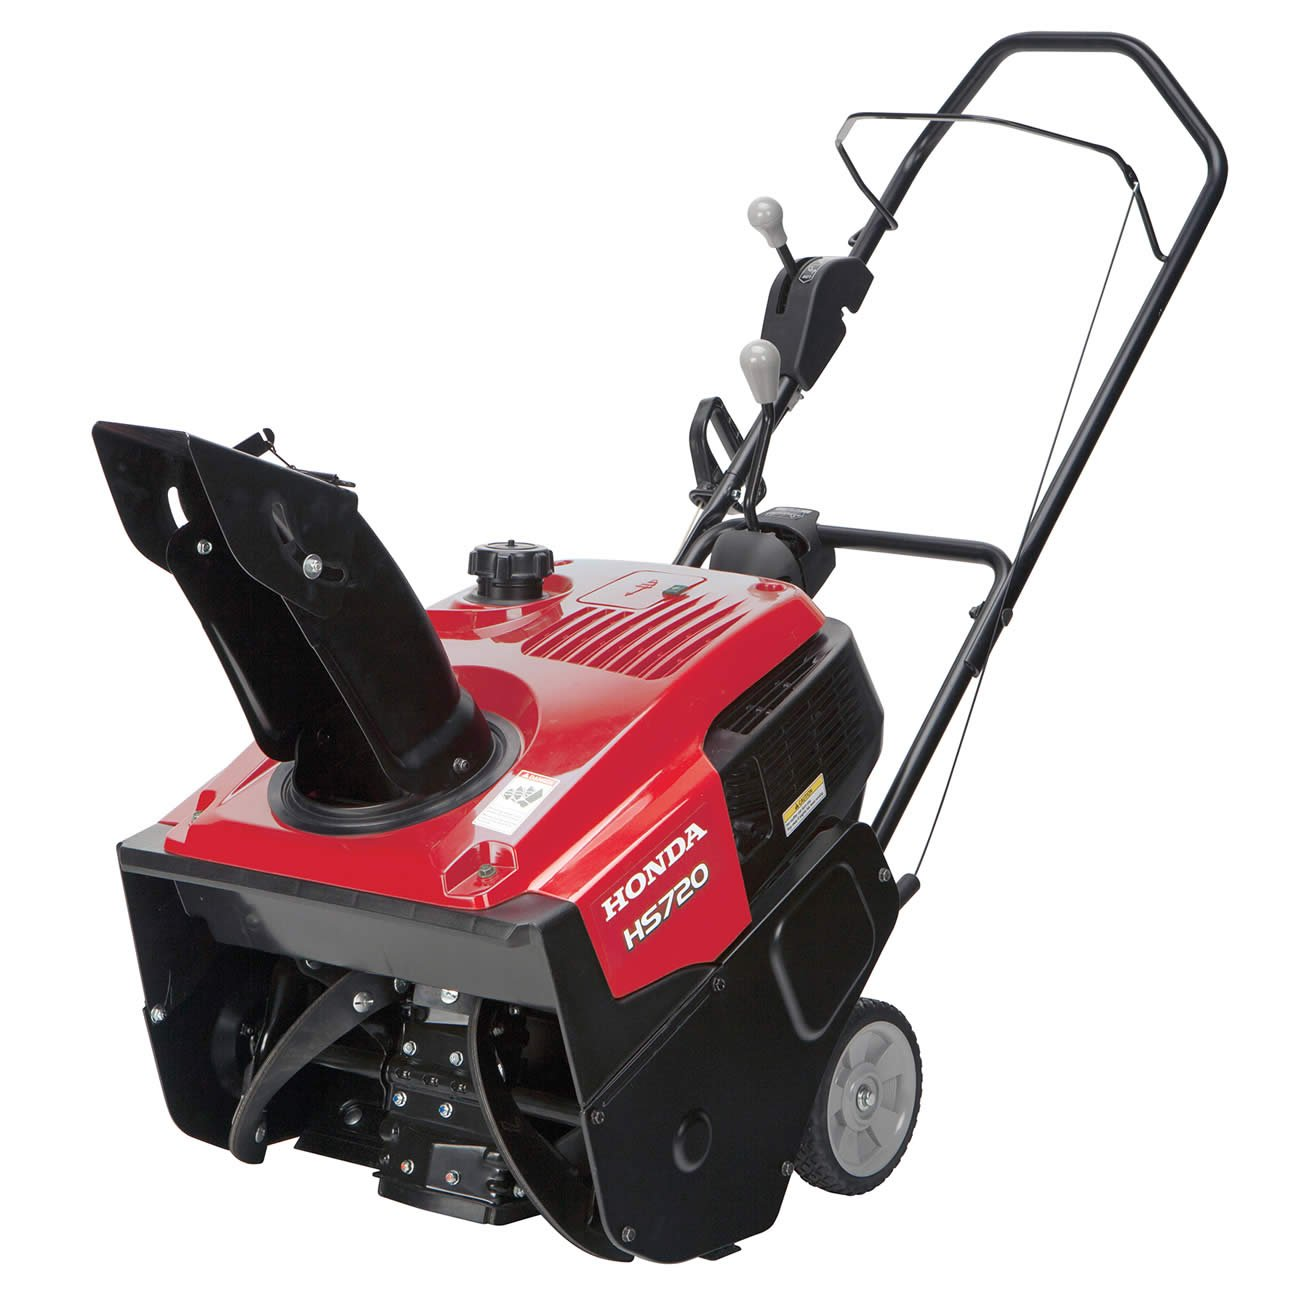 Honda HS720AA Snow Blower Black Friday Deal